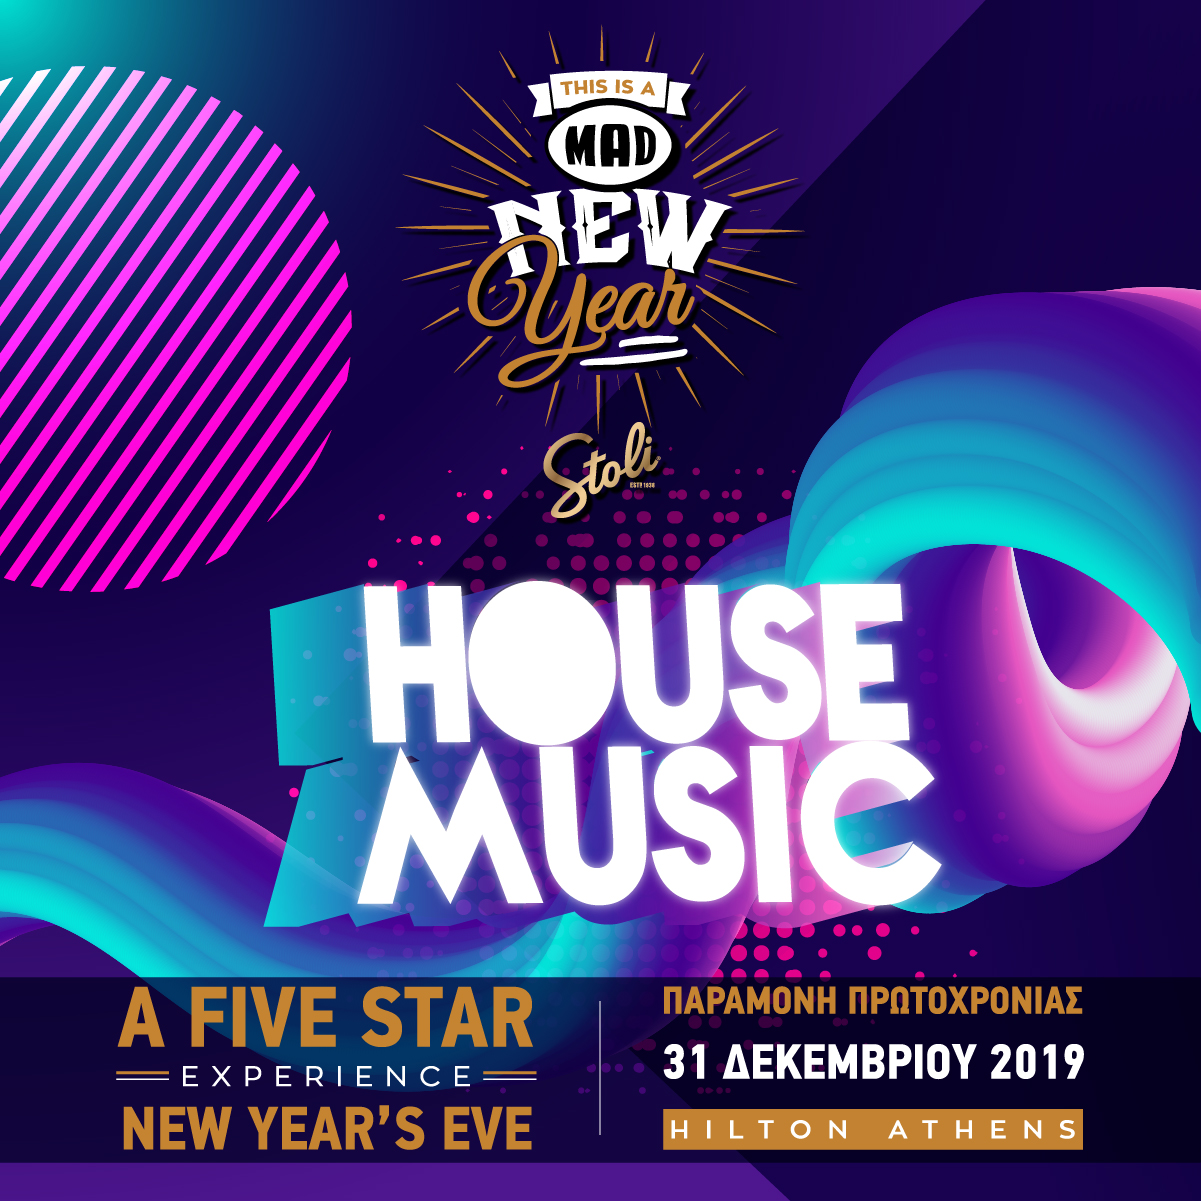 A Five House Star Experience